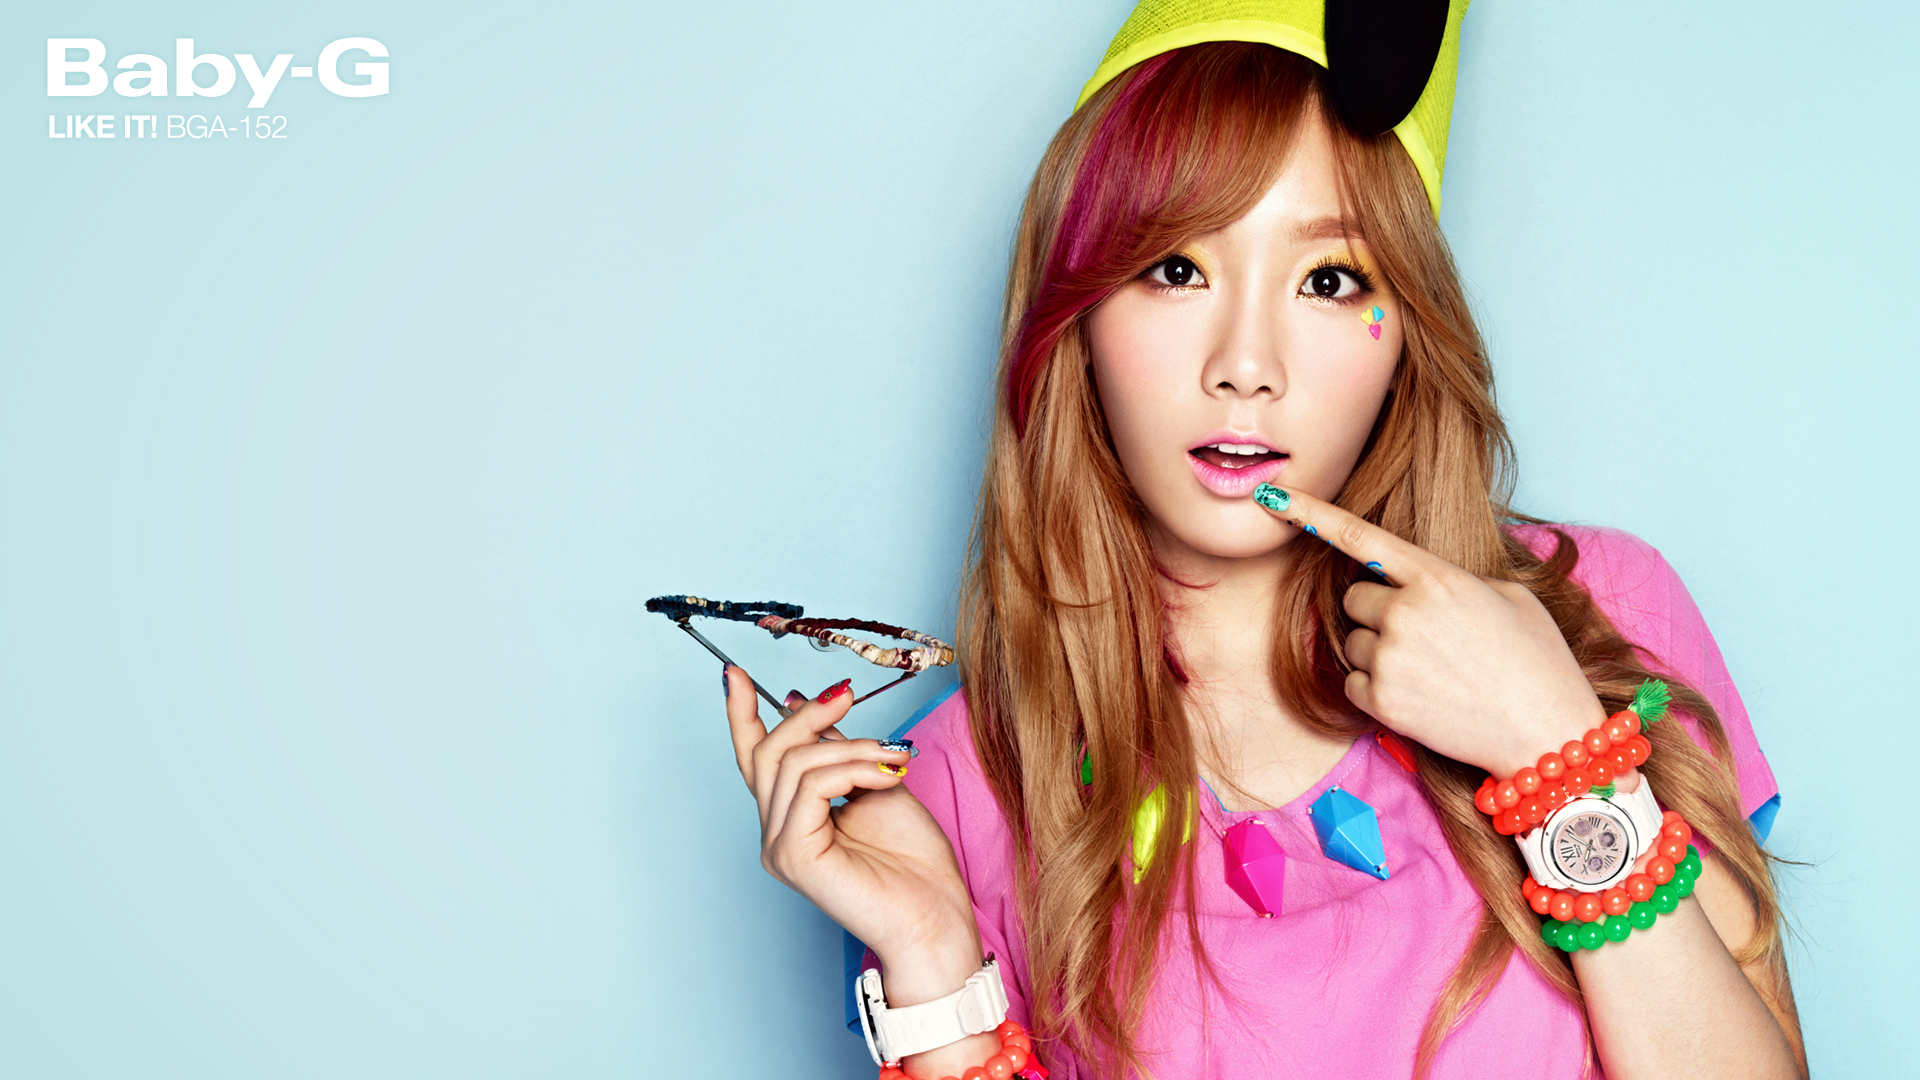 Girls generation snsd girls generation taeyeon casio s baby g